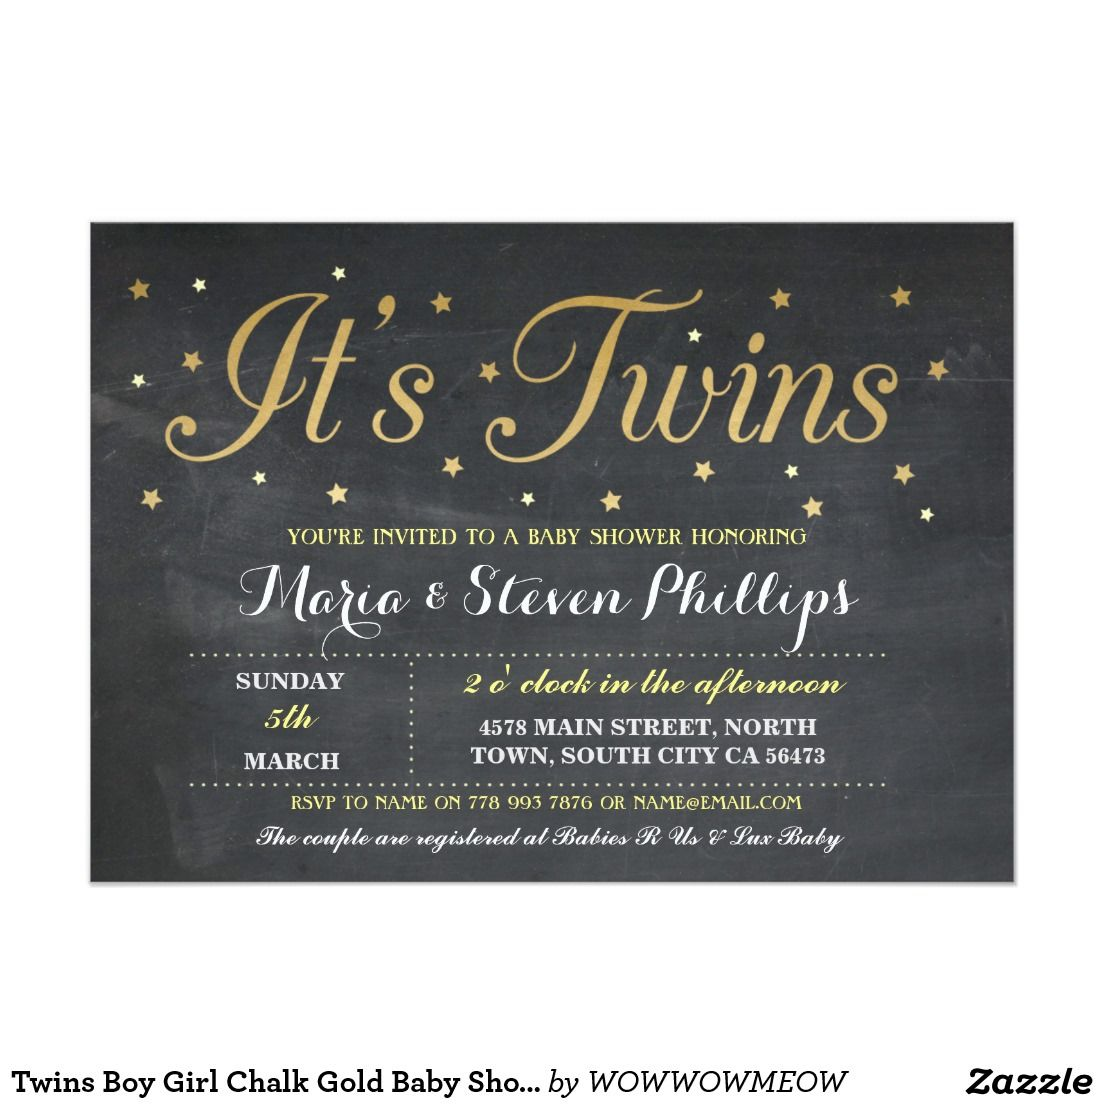 Twins Boy Girl Chalk Gold Baby Shower Invitation | Twin Babies ...